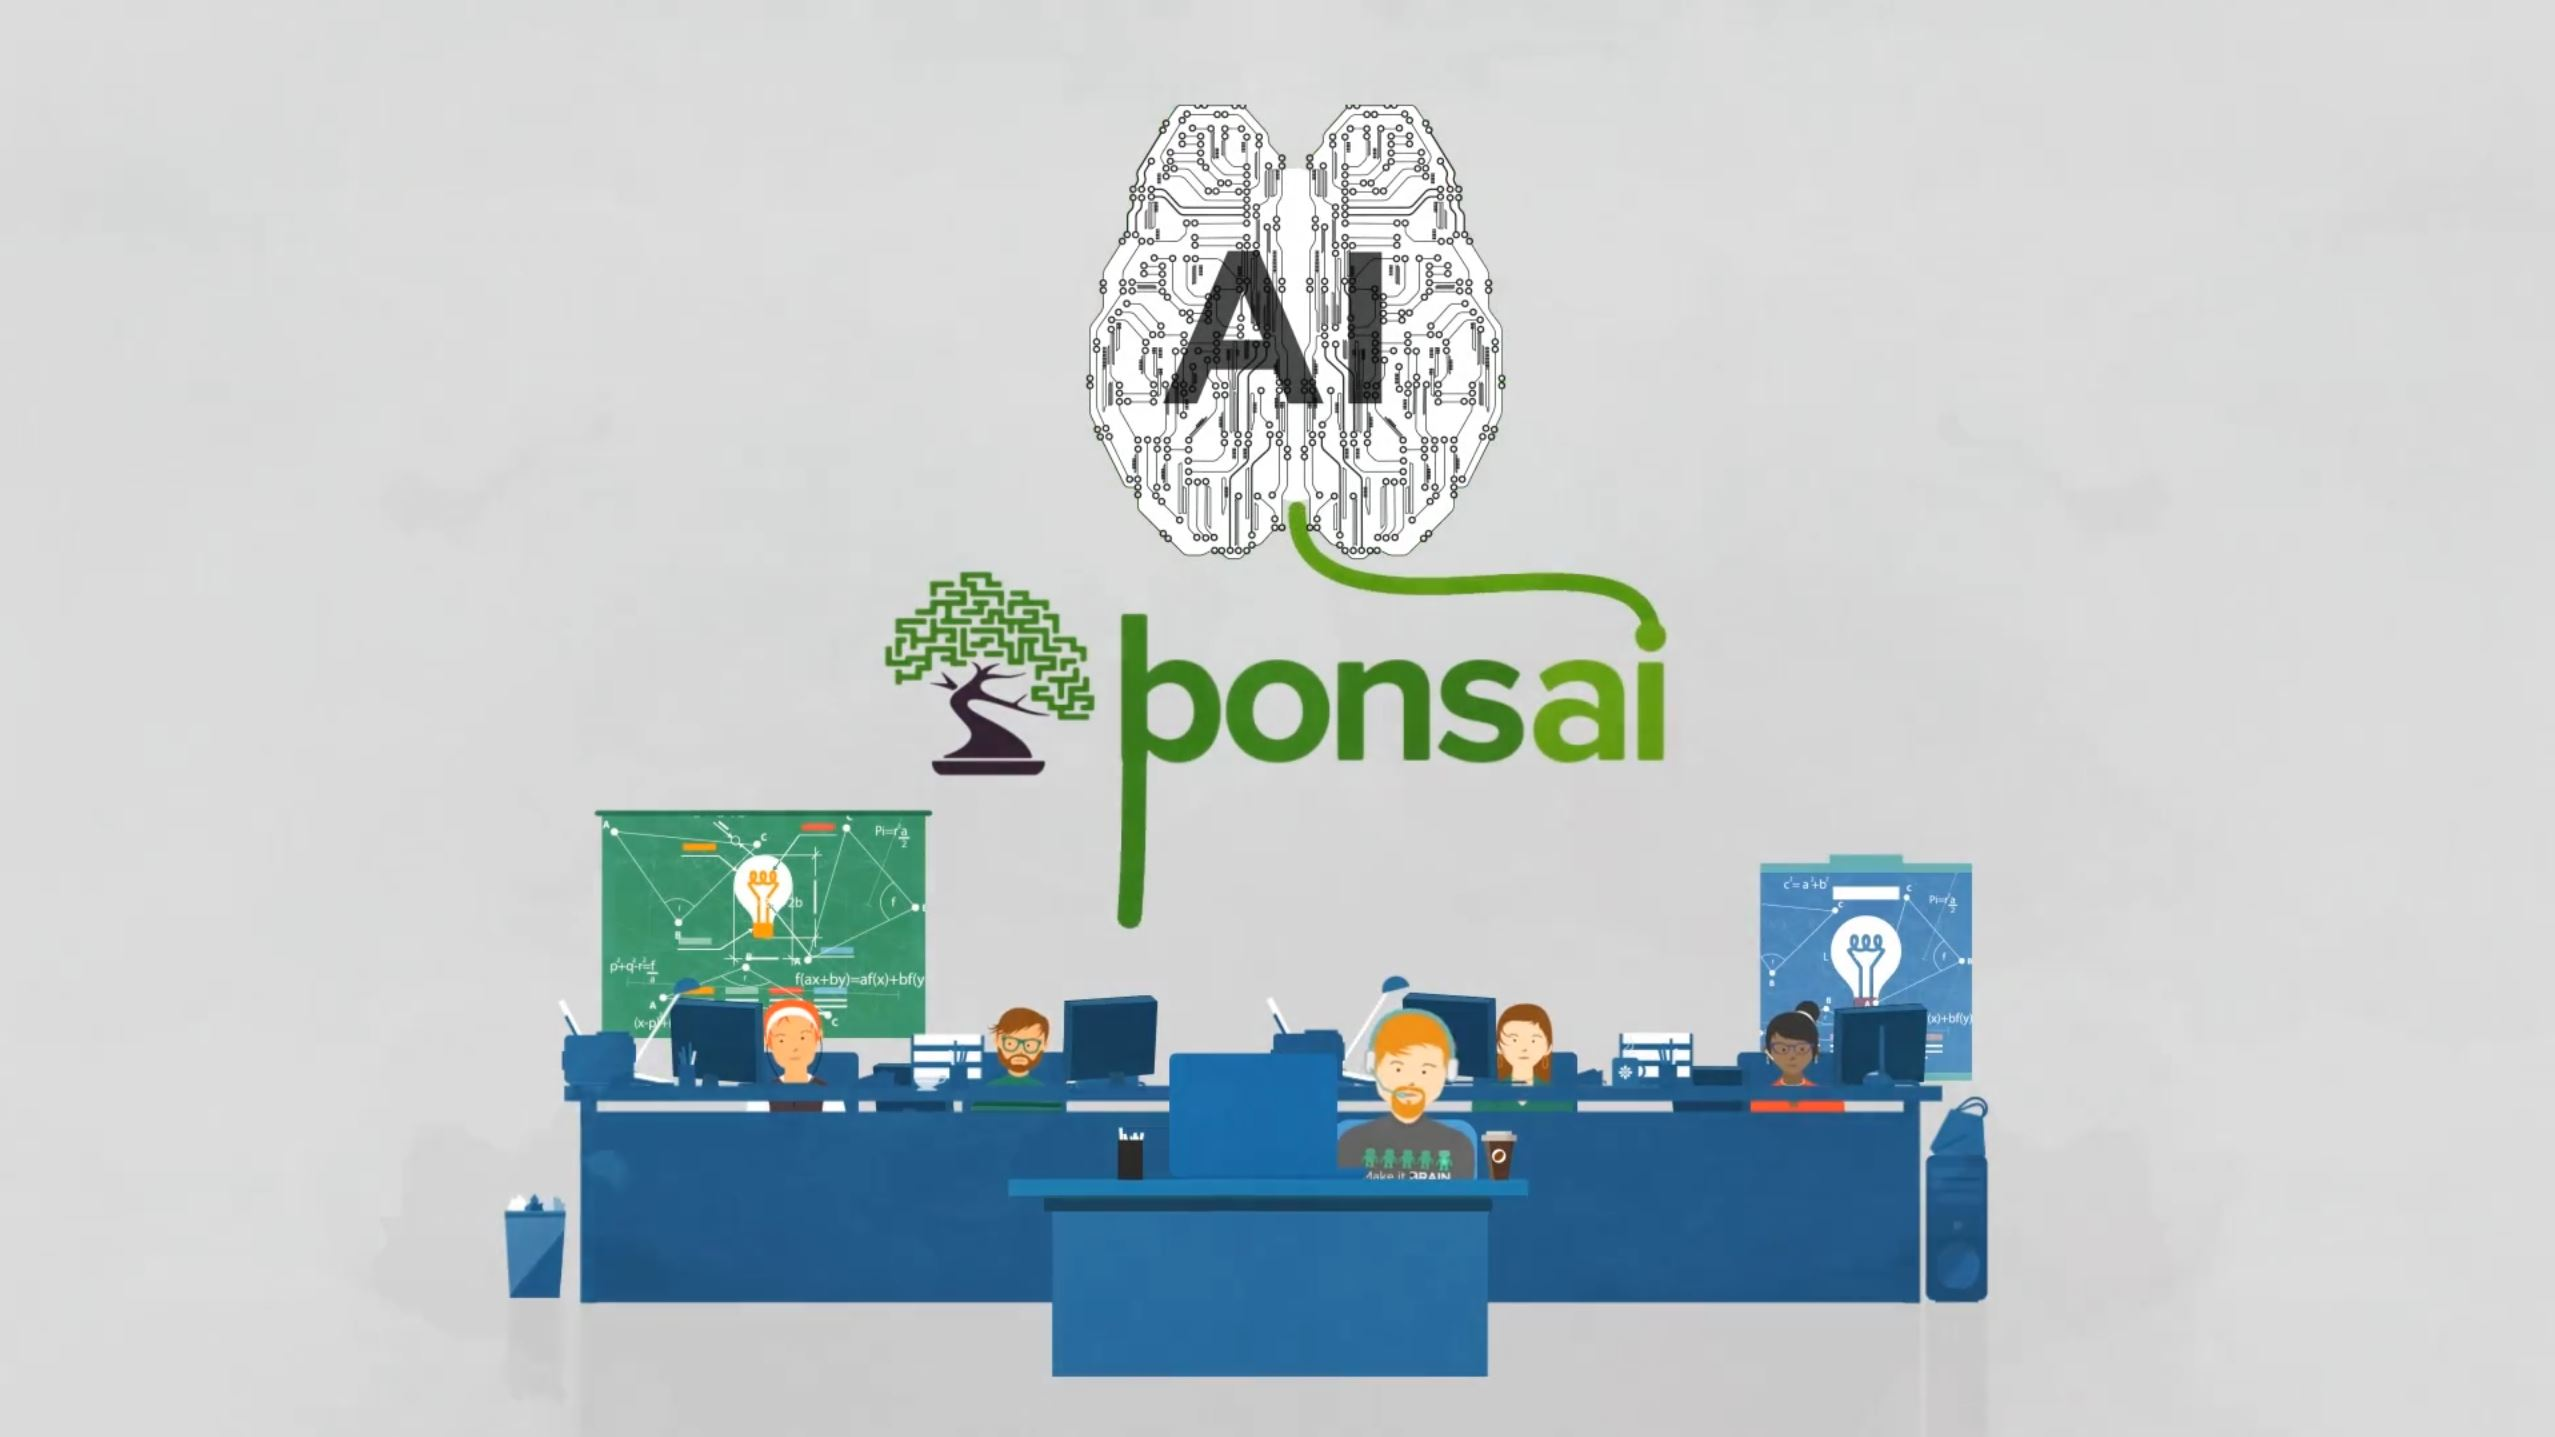 Bonsai Microsoft AI machine learning